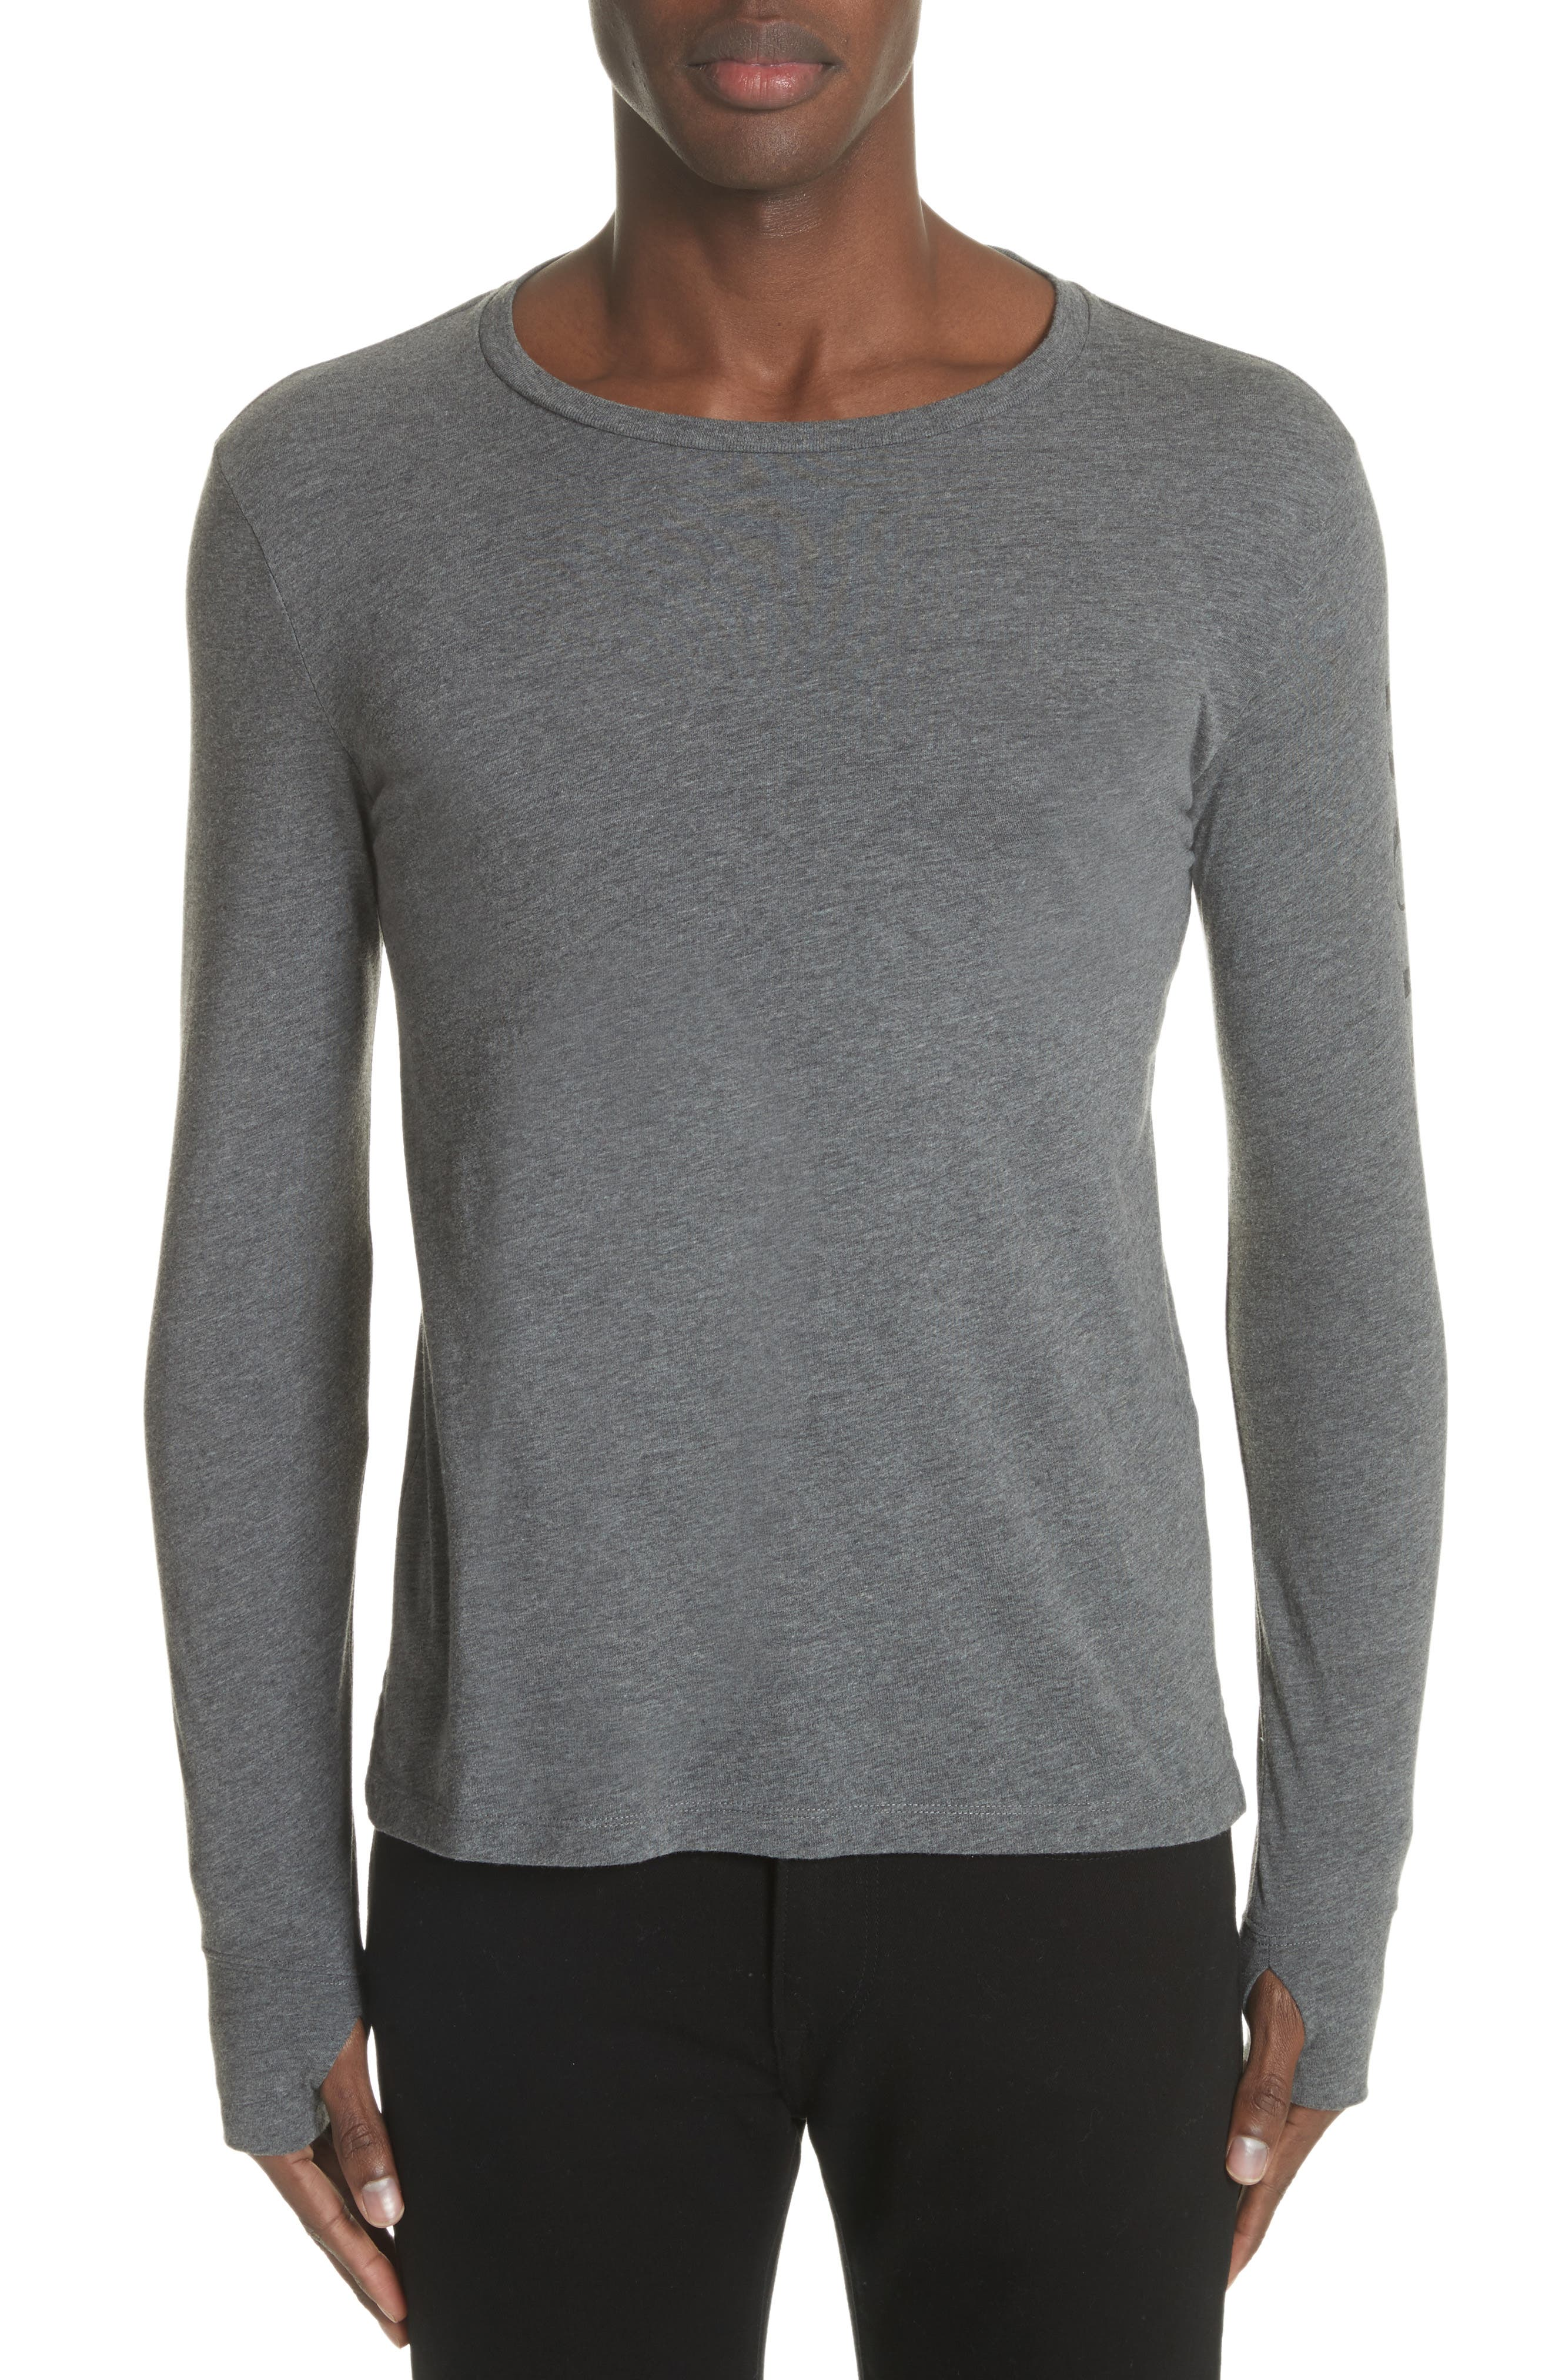 Marchston Regular Fit Crewneck Shirt,                         Main,                         color, 031